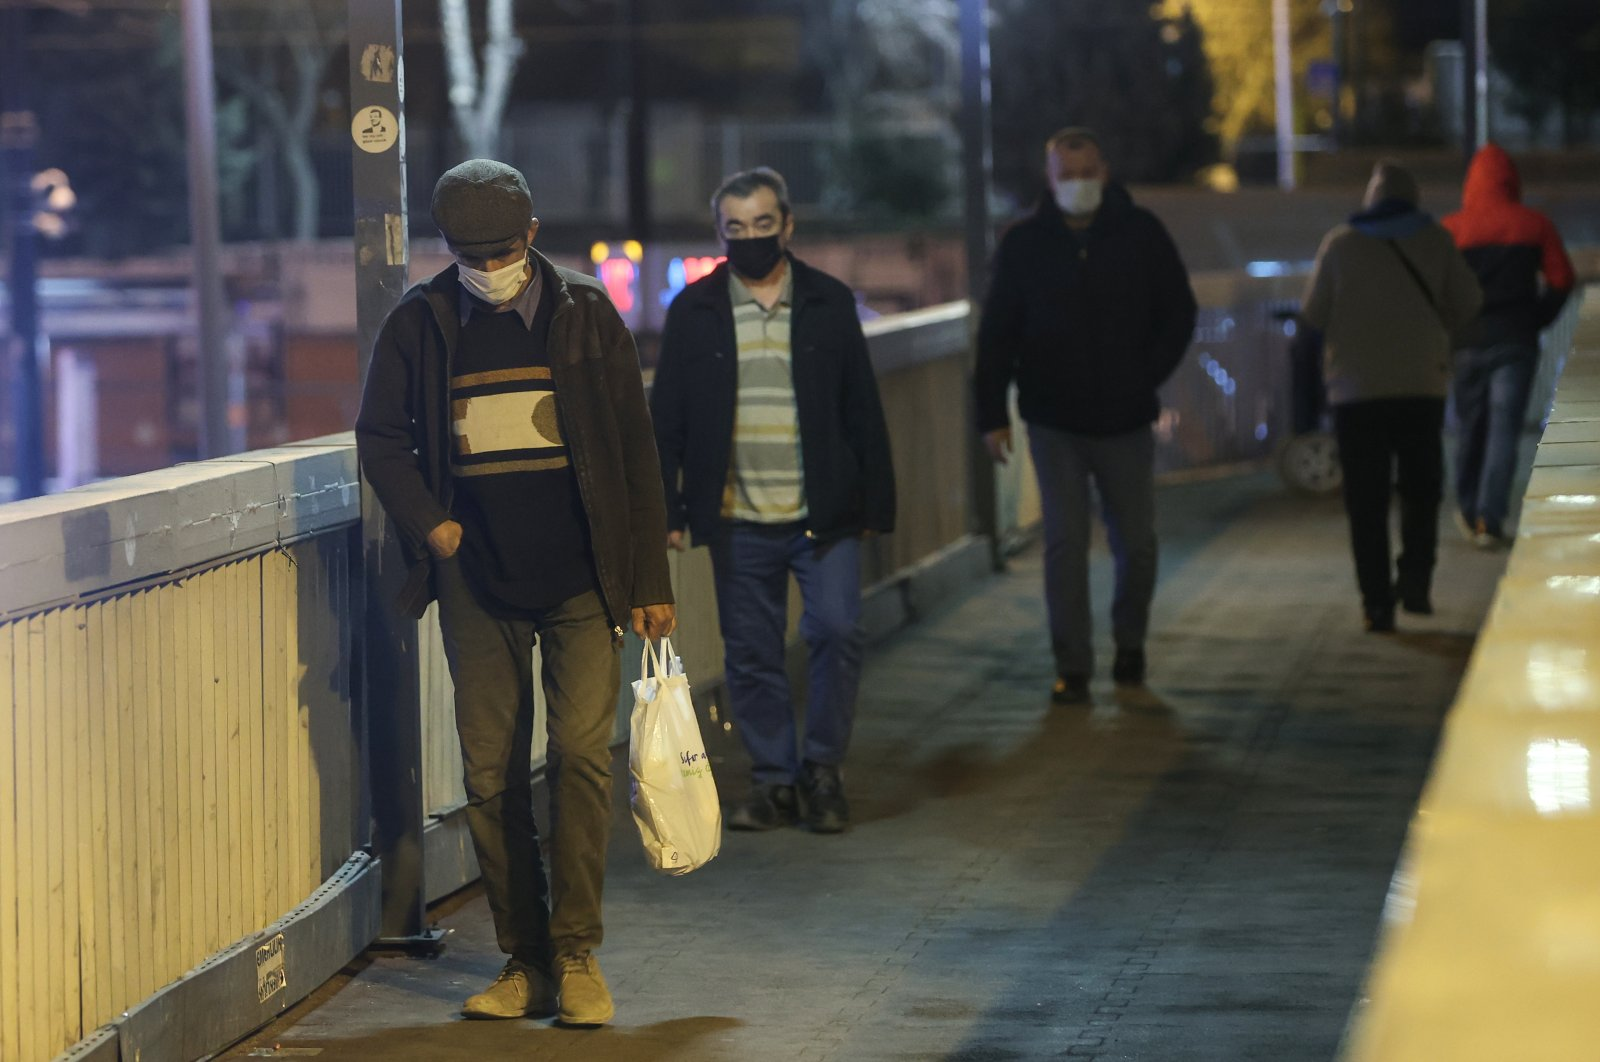 People wearing protective masks walk on an overpass, in Istanbul, Turkey, Feb. 8, 2021. (AA Photo)